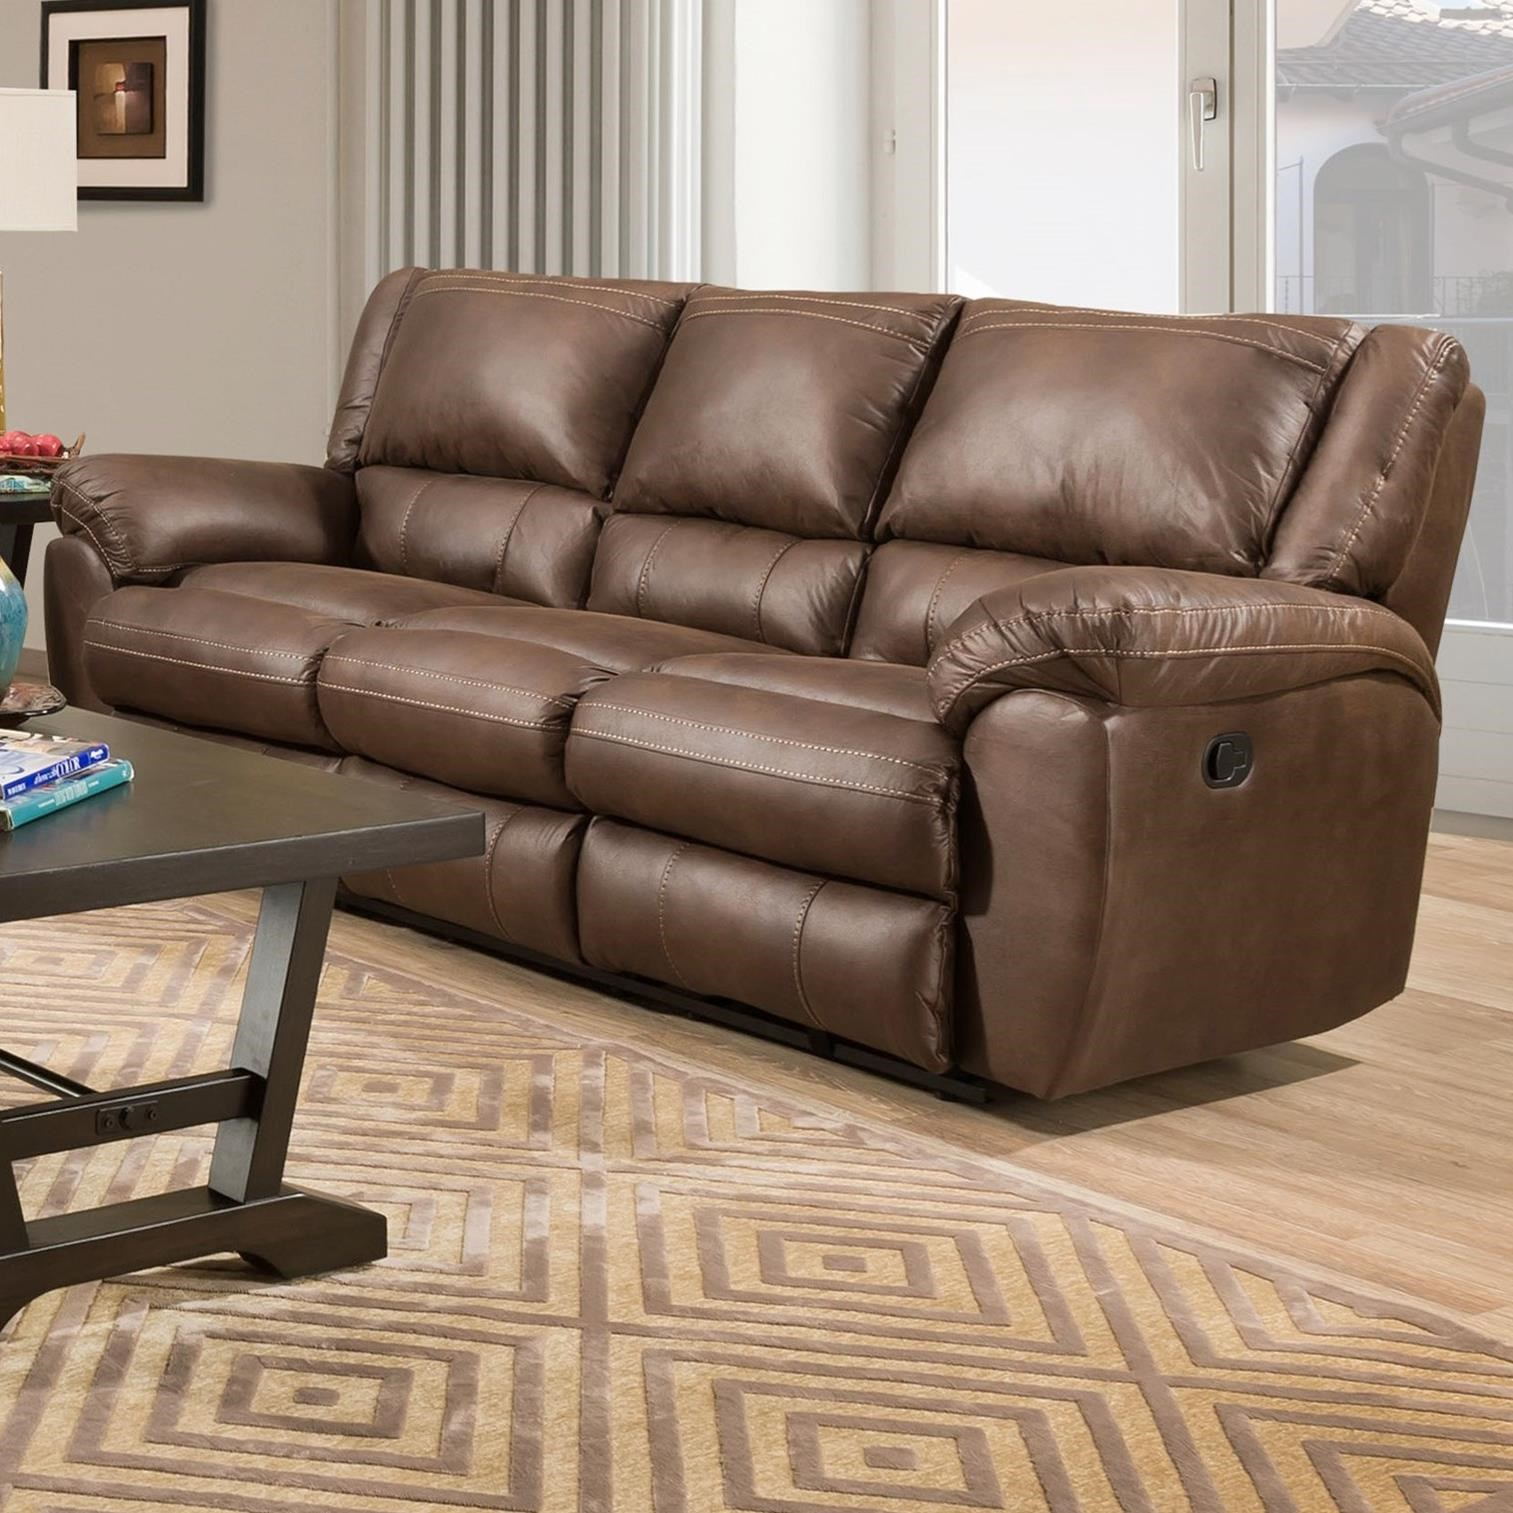 50433BR Power Double Motion Sofa by United Furniture Industries at Dream Home Interiors